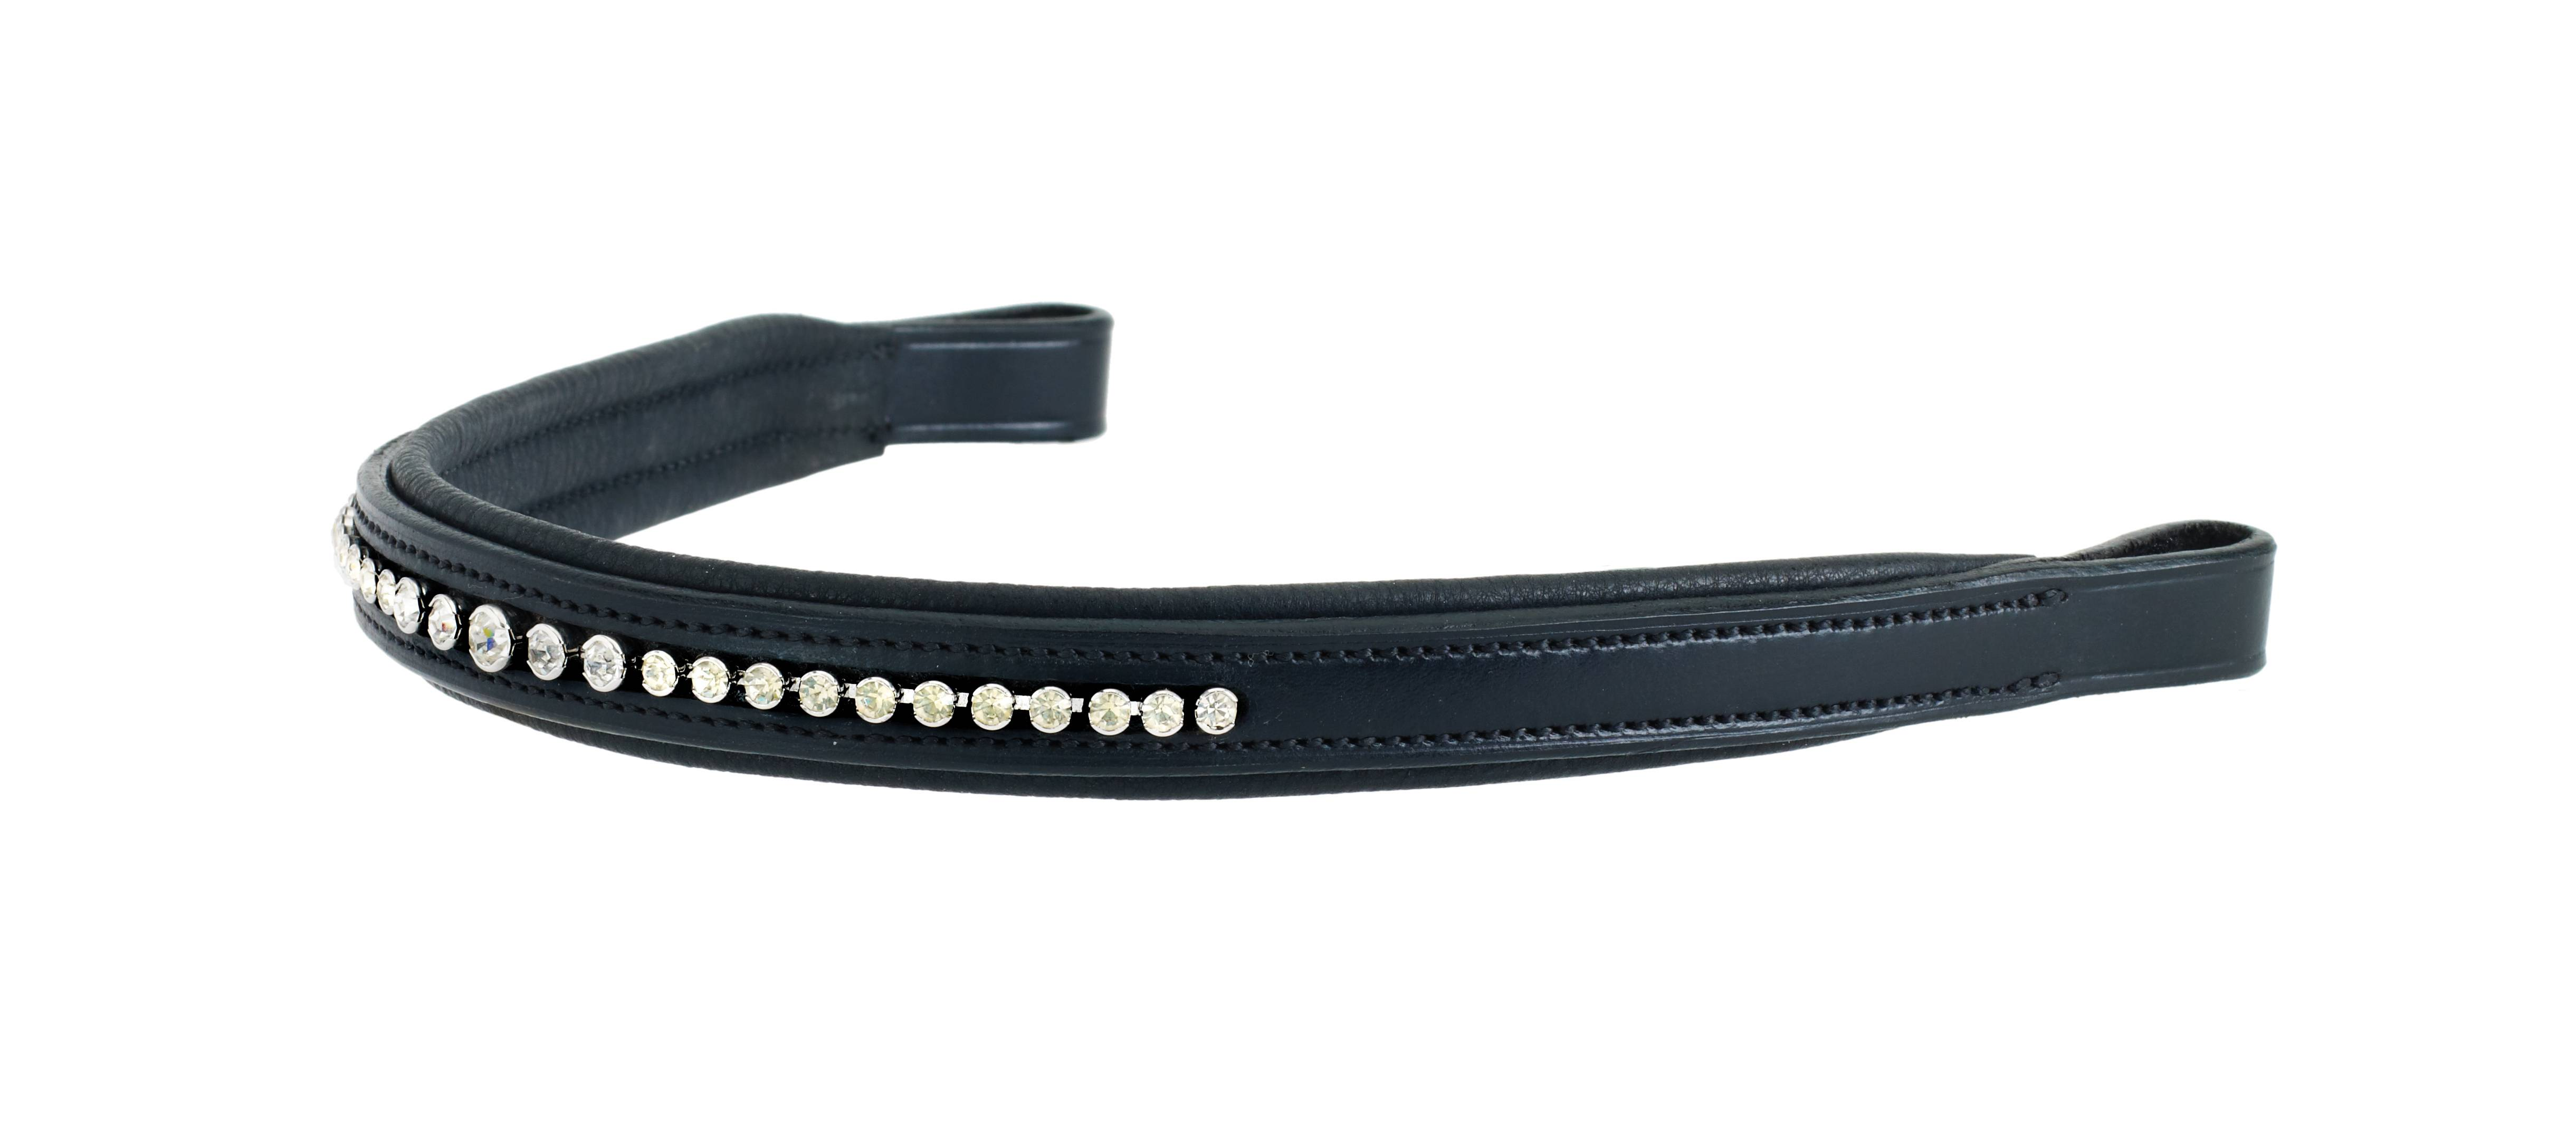 Ovation Natalia Straight Browband